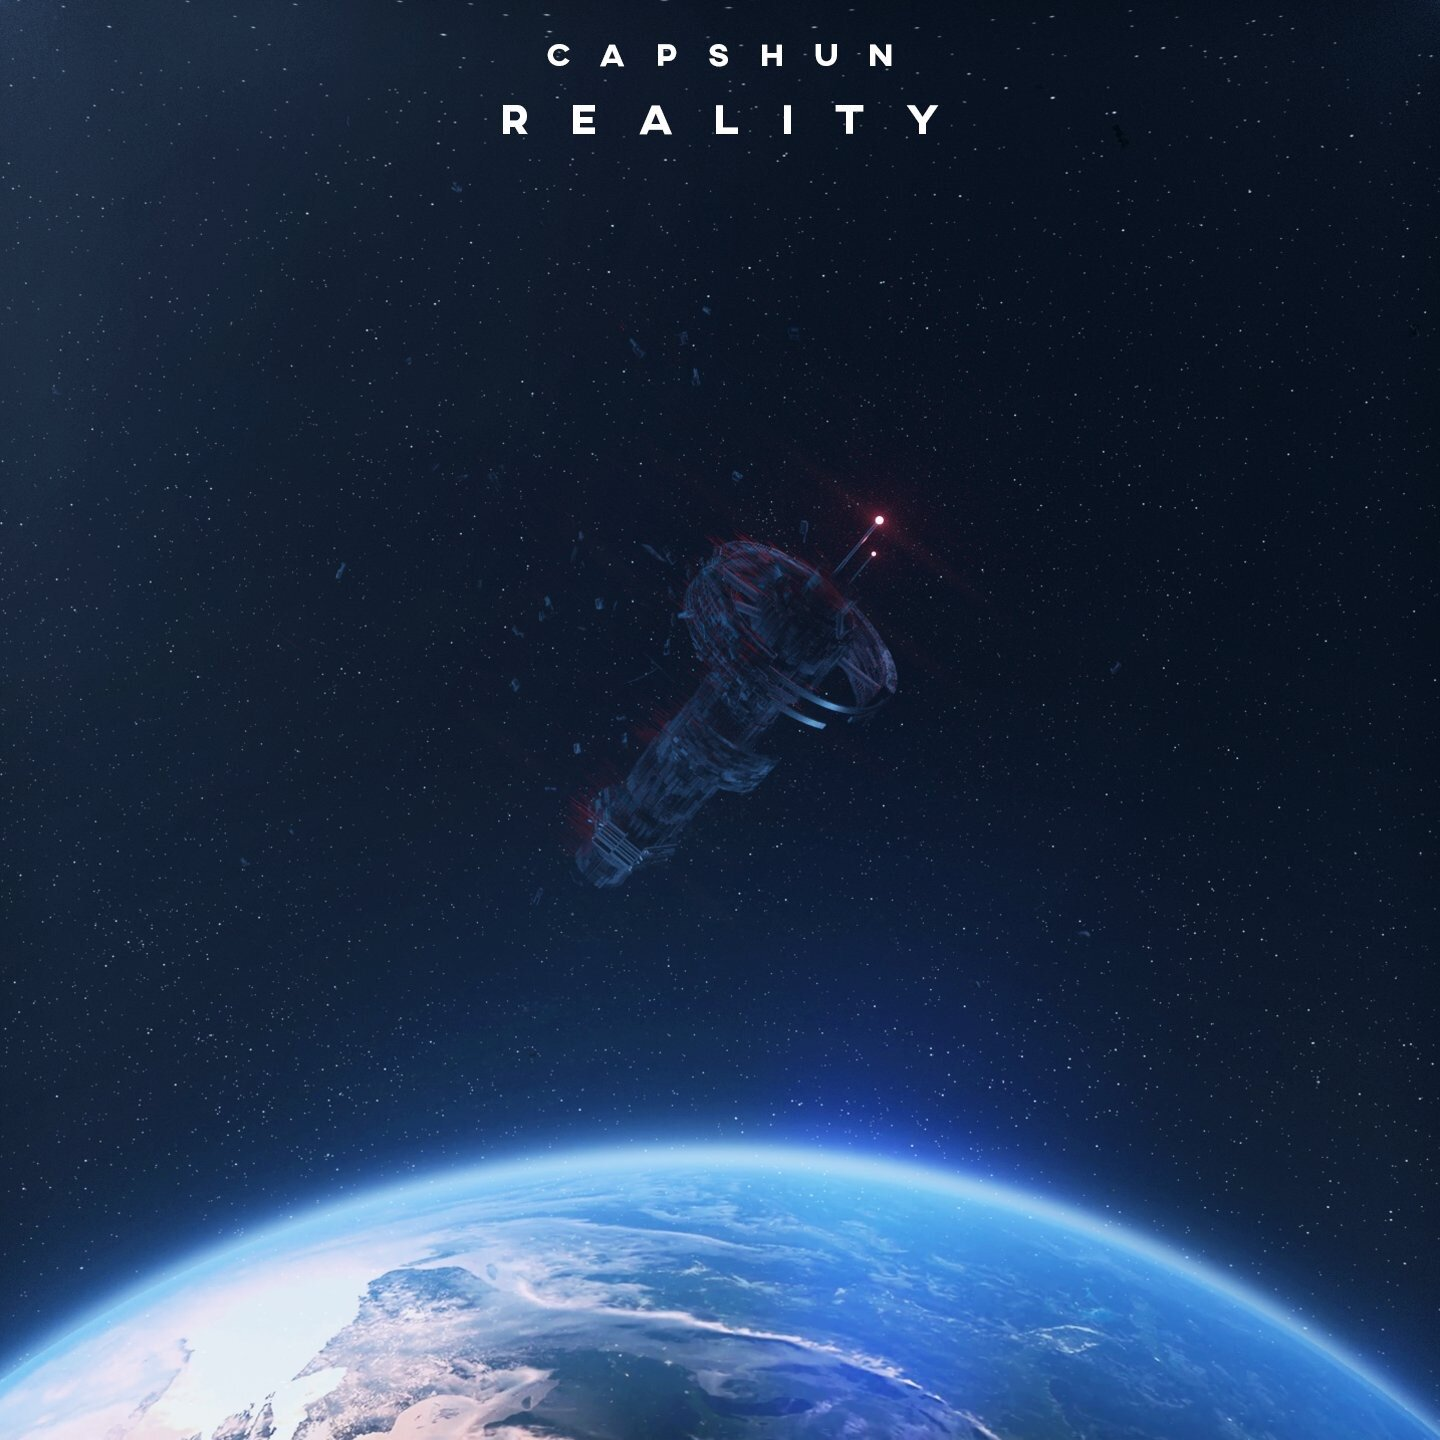 Cover Art for Reality by @jei_kobu